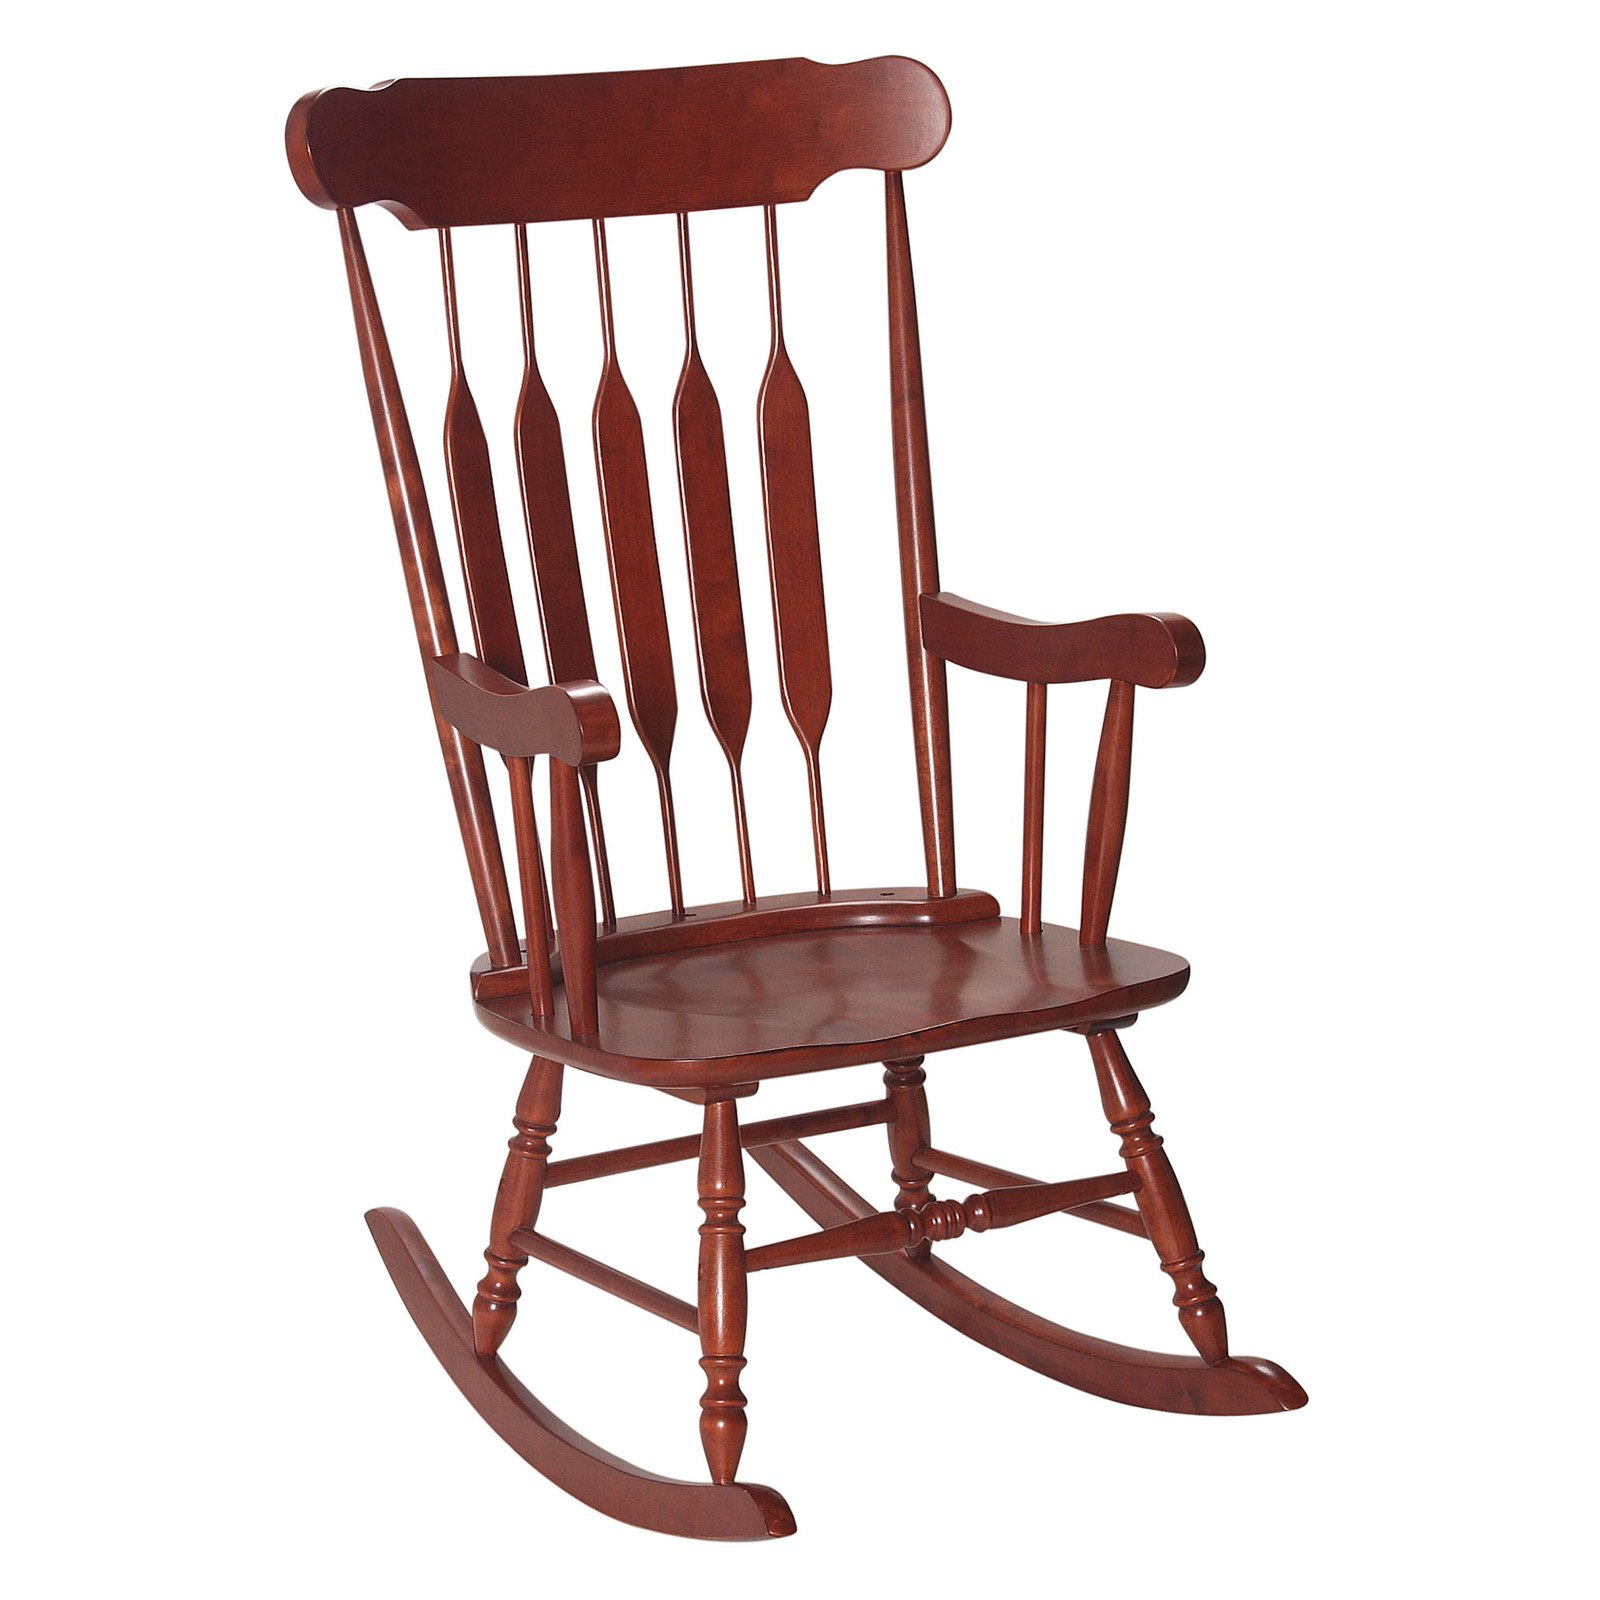 Gift Mark Adult Rocking Chair - Cherry